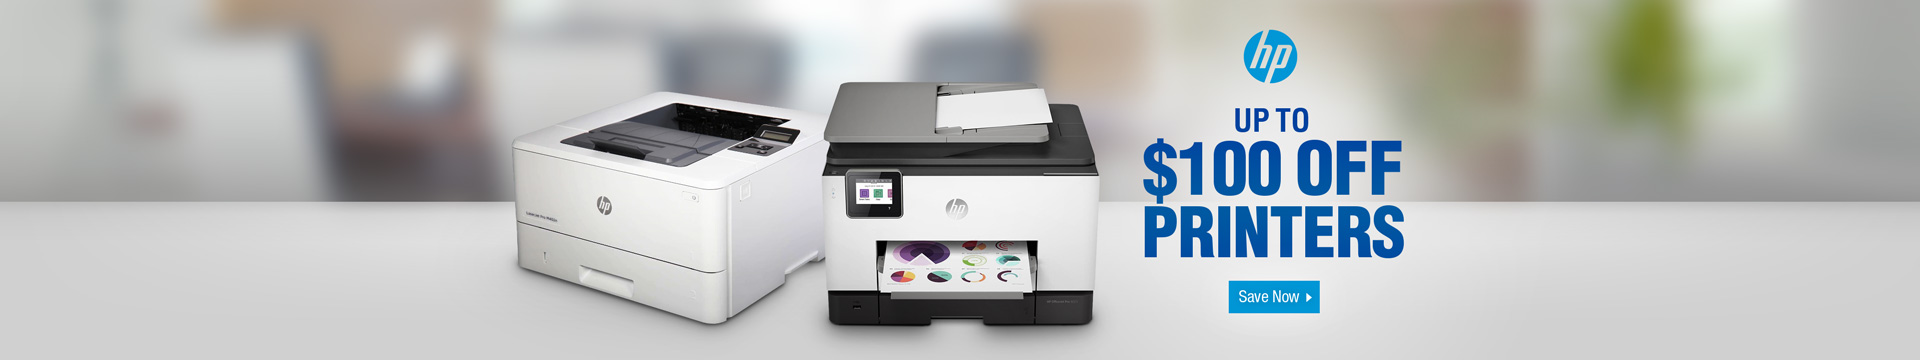 UP TO $100 OFF PRINTERS